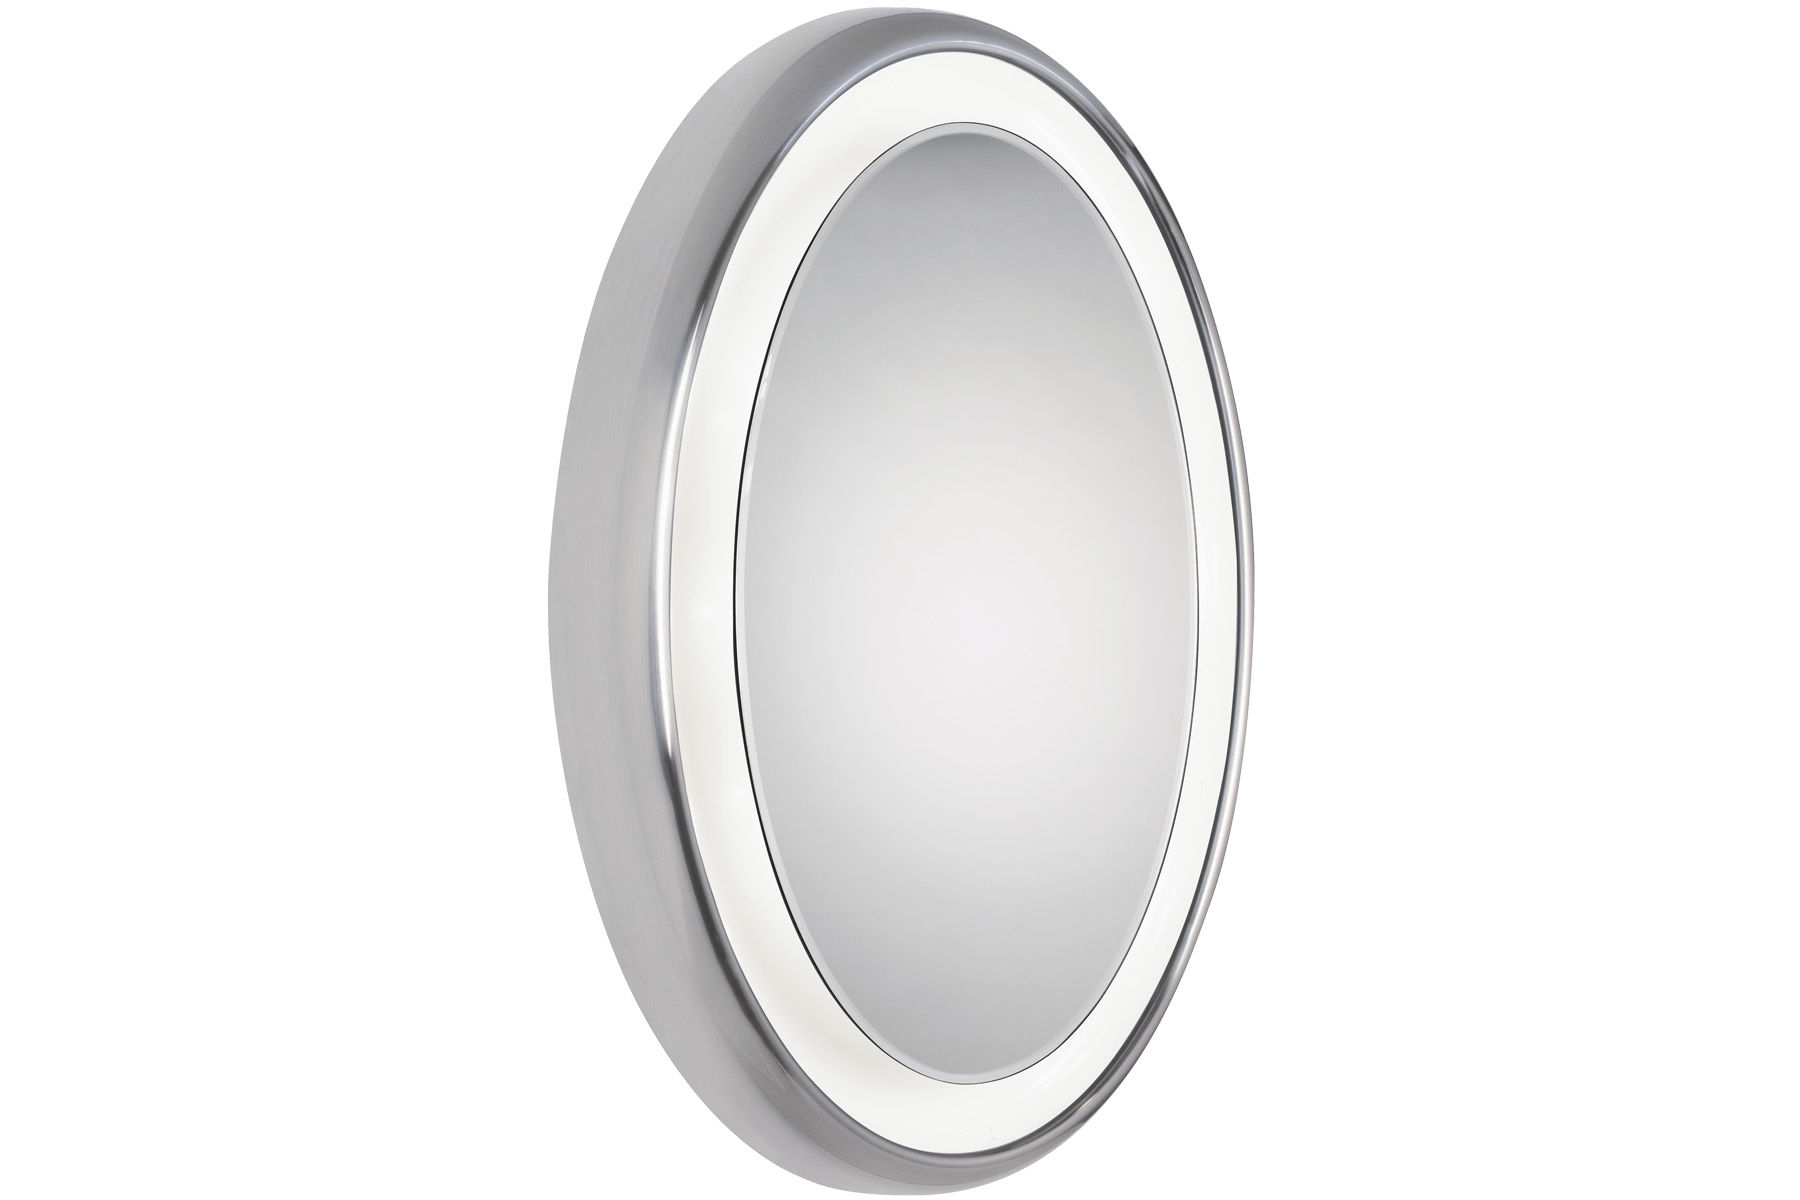 Illuminated bathroom mirror - TIGRIS MIRROR OVAL - TECH LIGHTING